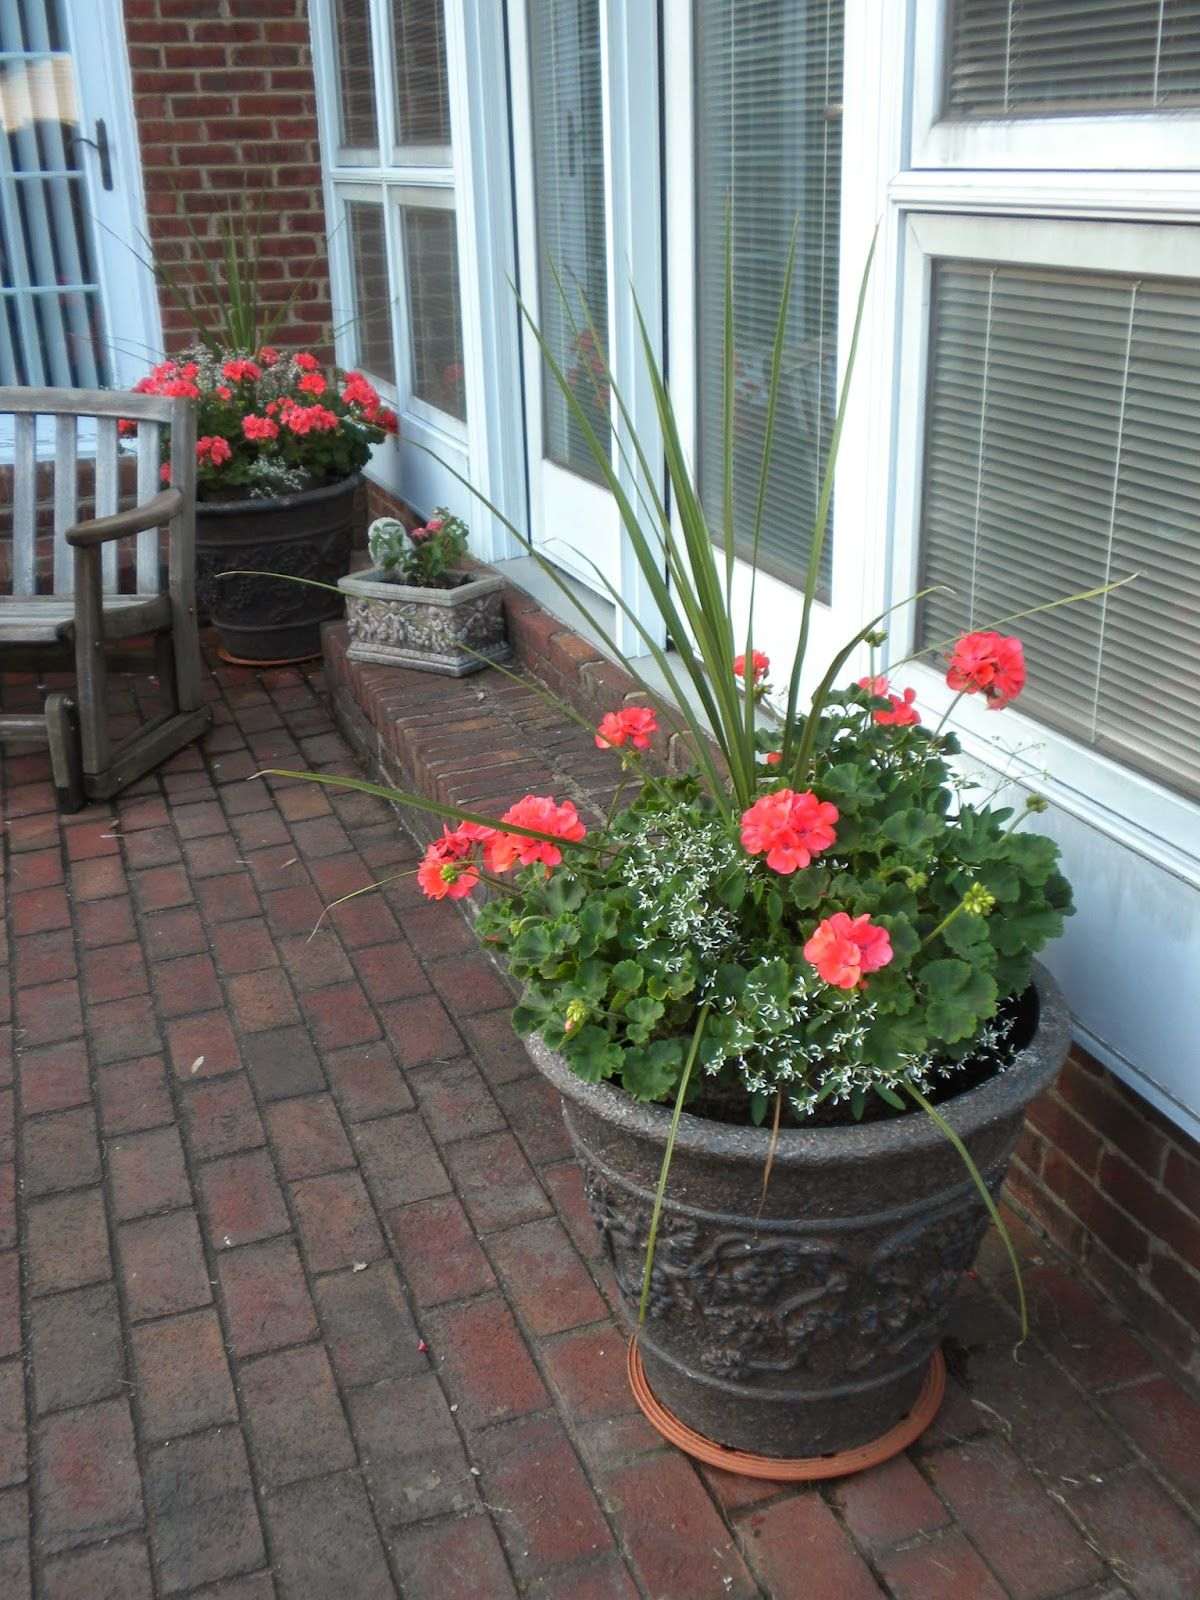 Panoply plan now annual flower container ideas gardeningyard annual flower container ideas izmirmasajfo Image collections